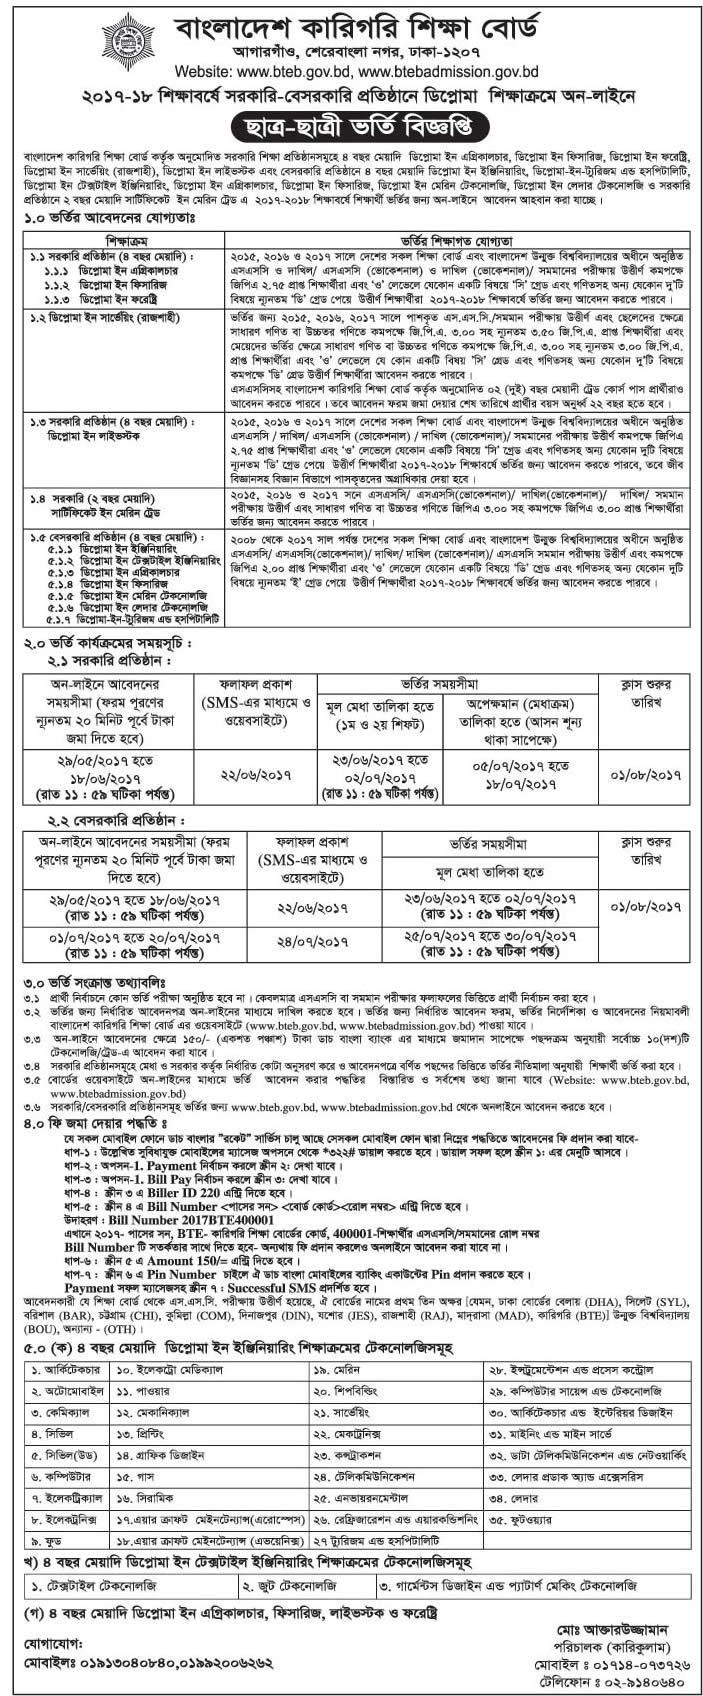 Diploma in Agriculture Admission Circular & Result 2019